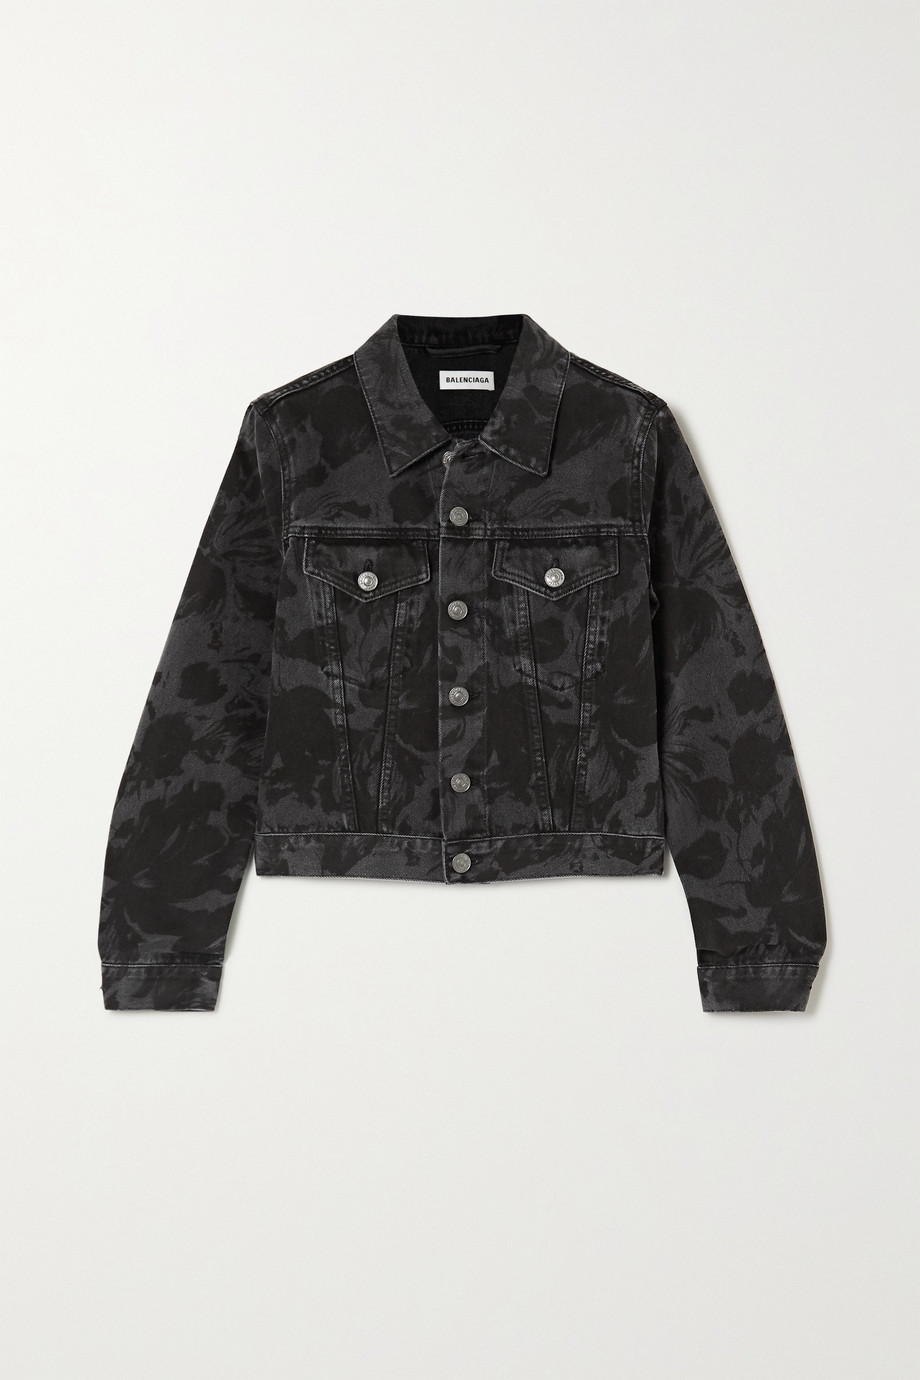 Balenciaga Cropped floral-print denim jacket